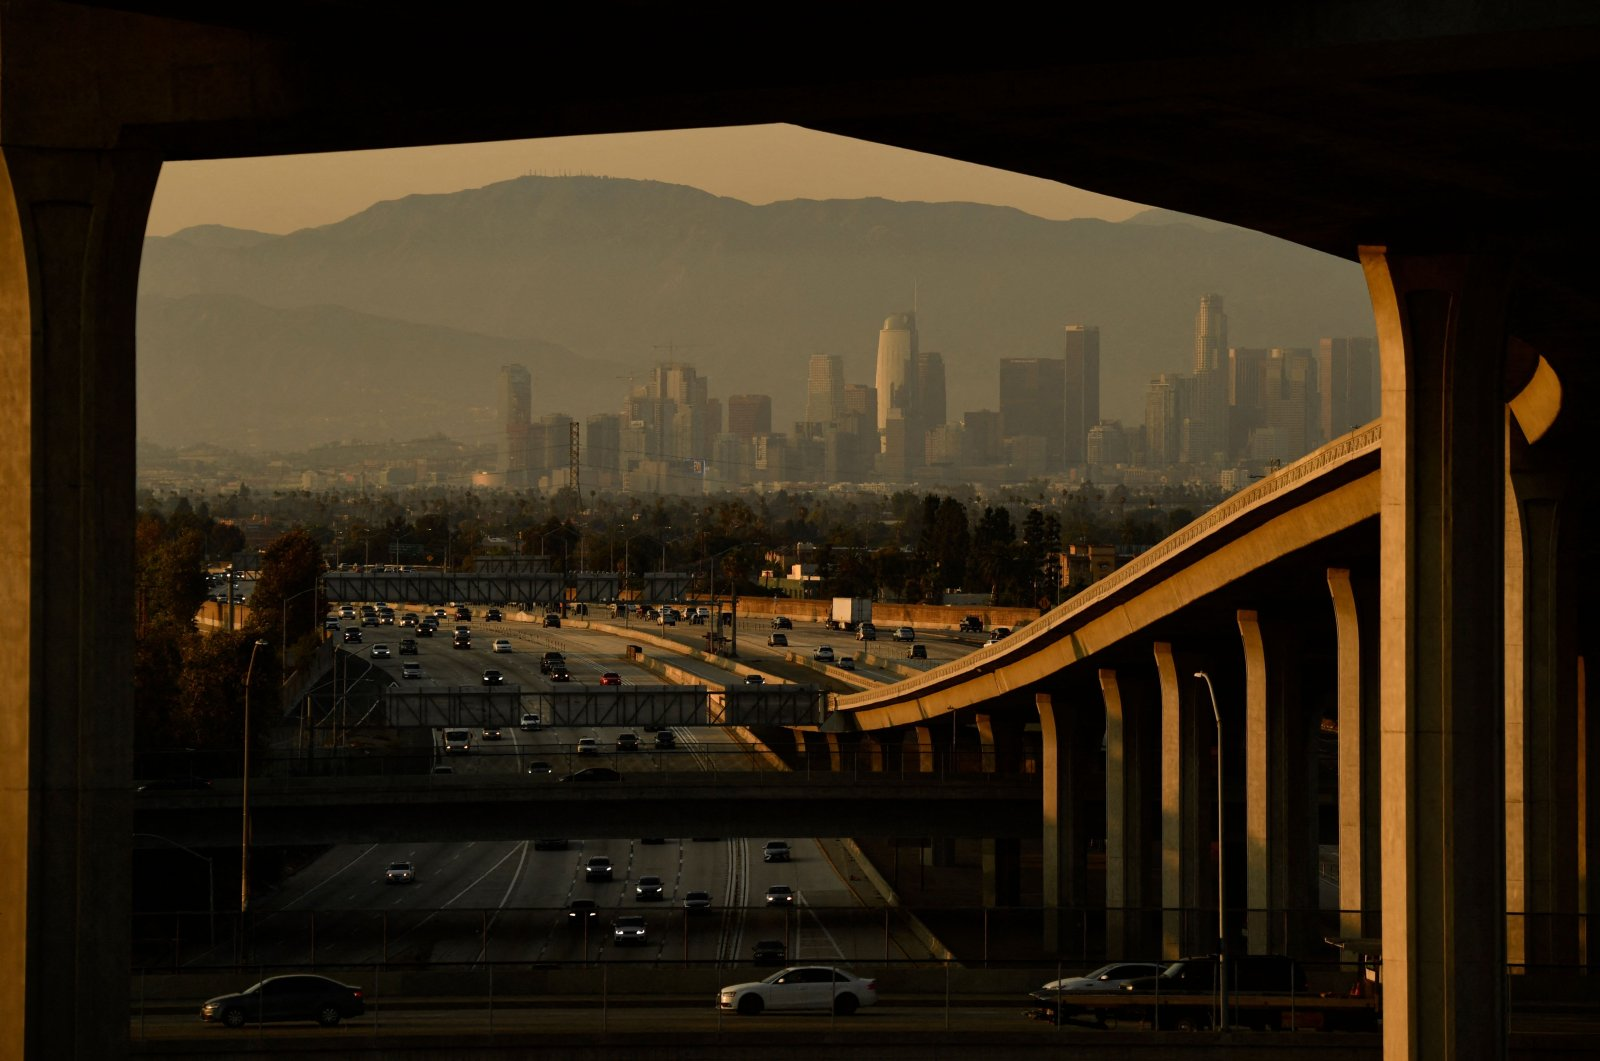 Vehicles drive on the 110 Freeway towards the Los Angeles skyline at the Judge Harry Pregerson Interchange during rush hour traffic in Los Angeles, California, U.S., on July 16, 2021. (AFP Photo)